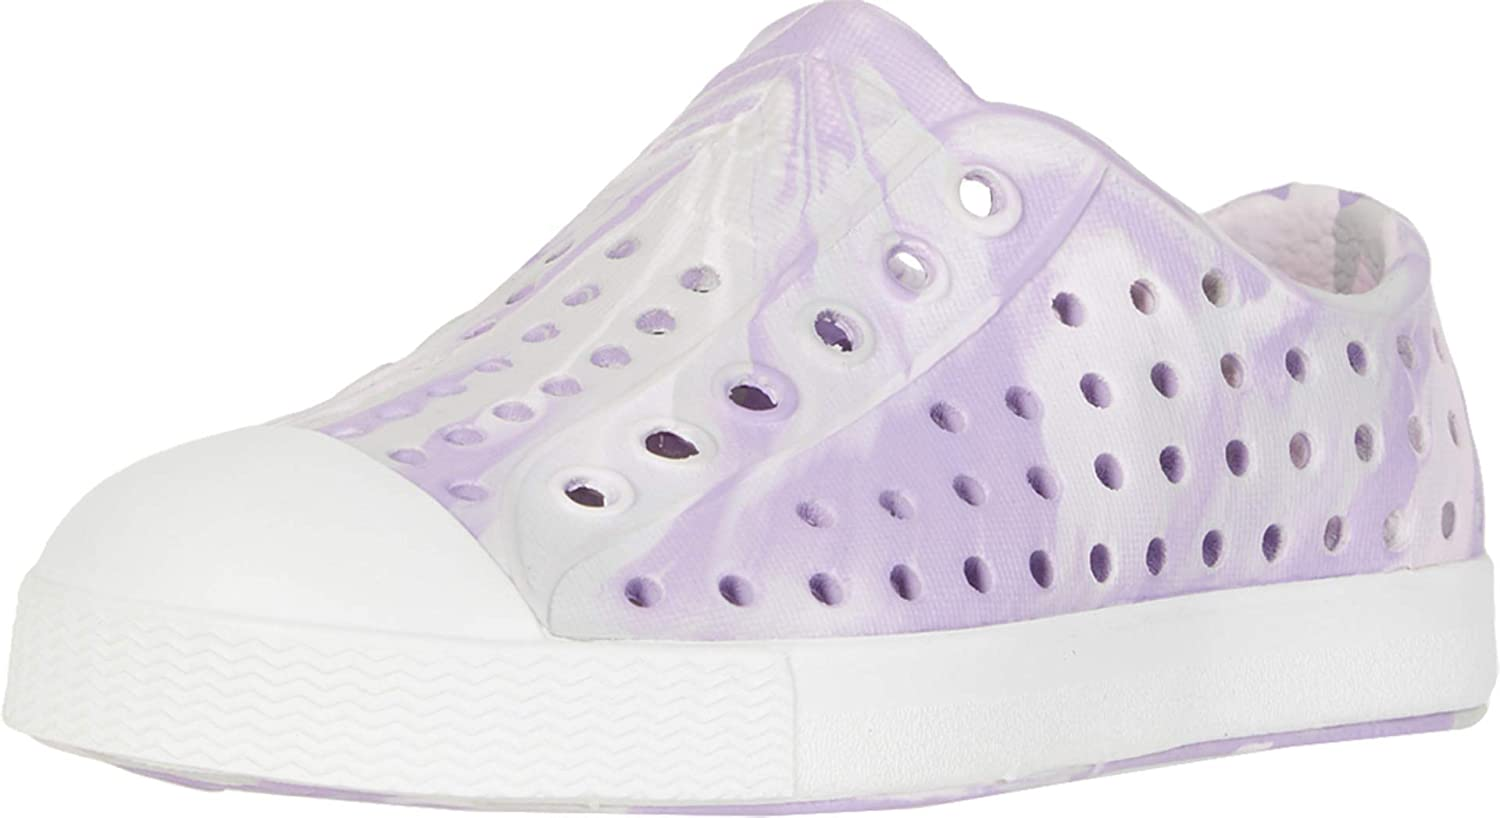 Native Kids Shoes Girls Jefferson Marbled Milk Pink//Shell White//Marbled 9 Toddler Toddler//Little Kid